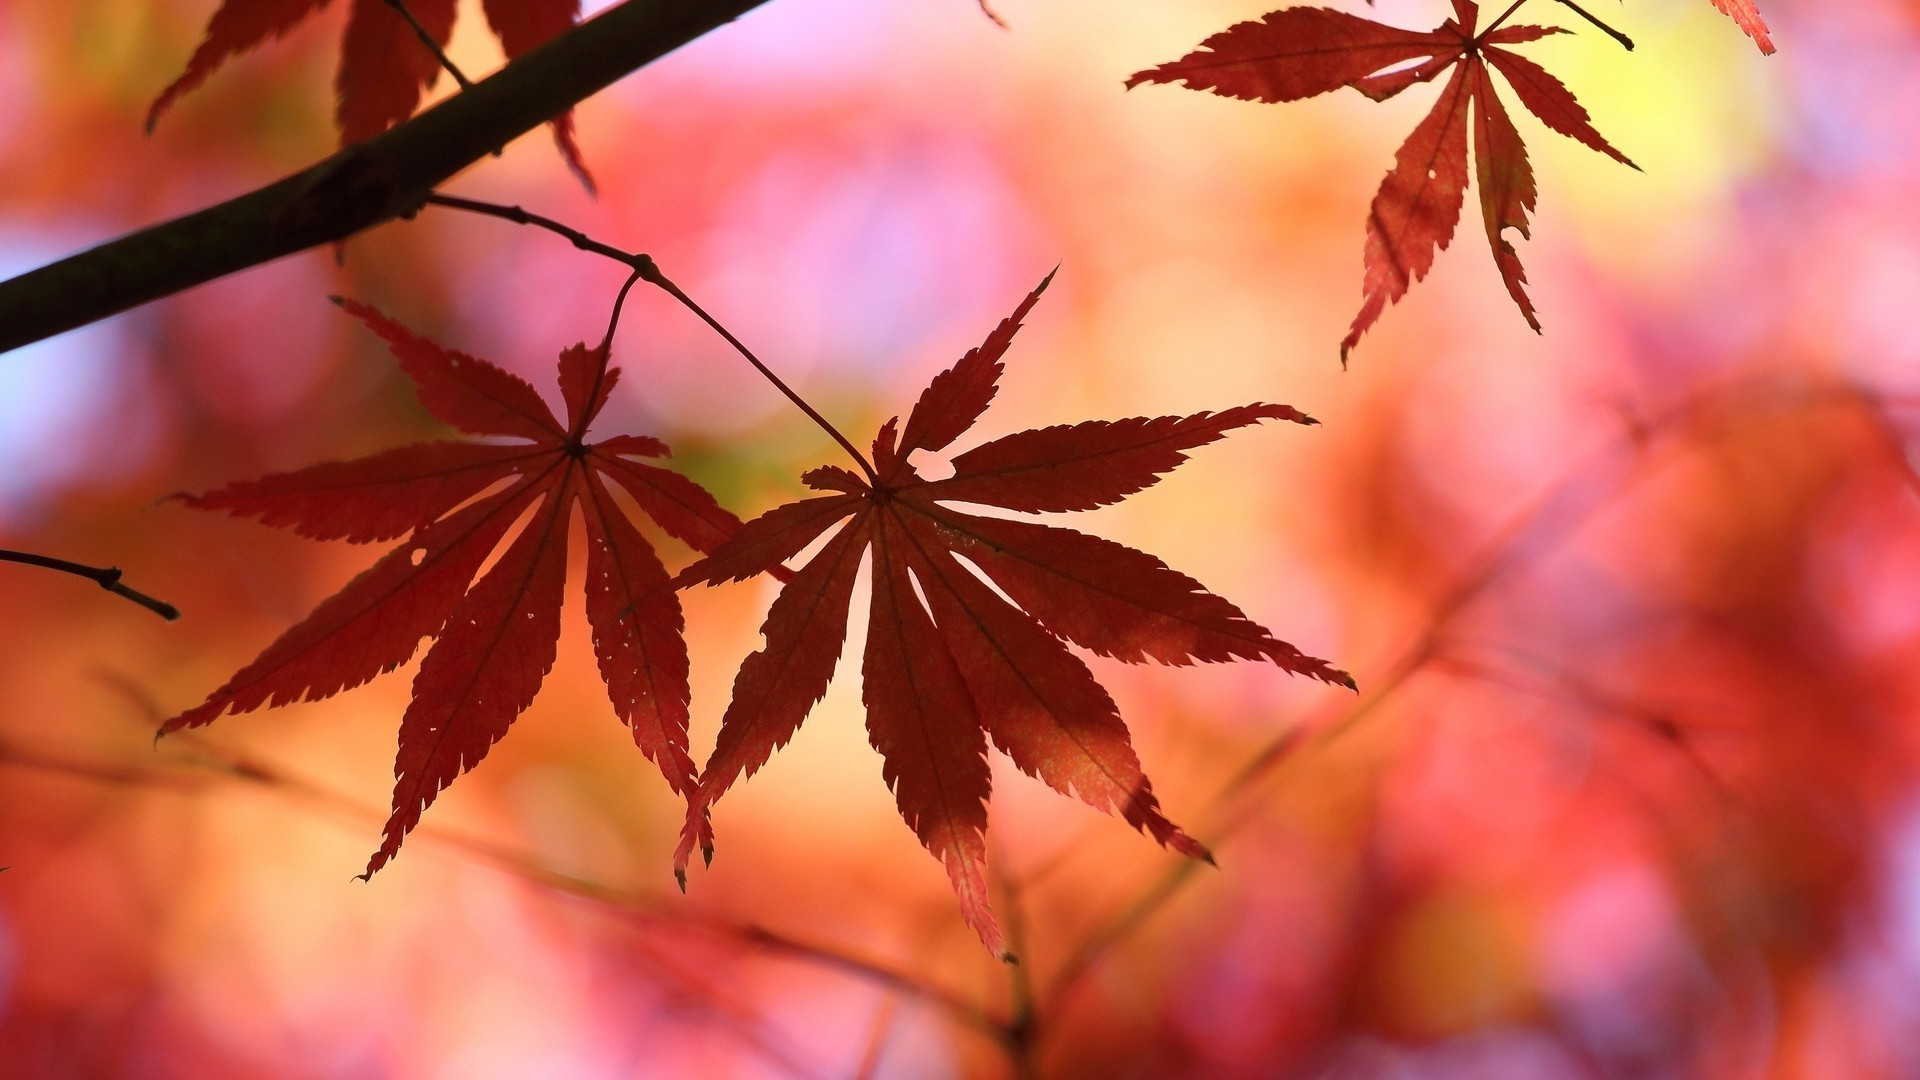 The Fall Movie Wallpaper Leaves Nature Fall Blurred Wallpapers Hd Desktop And